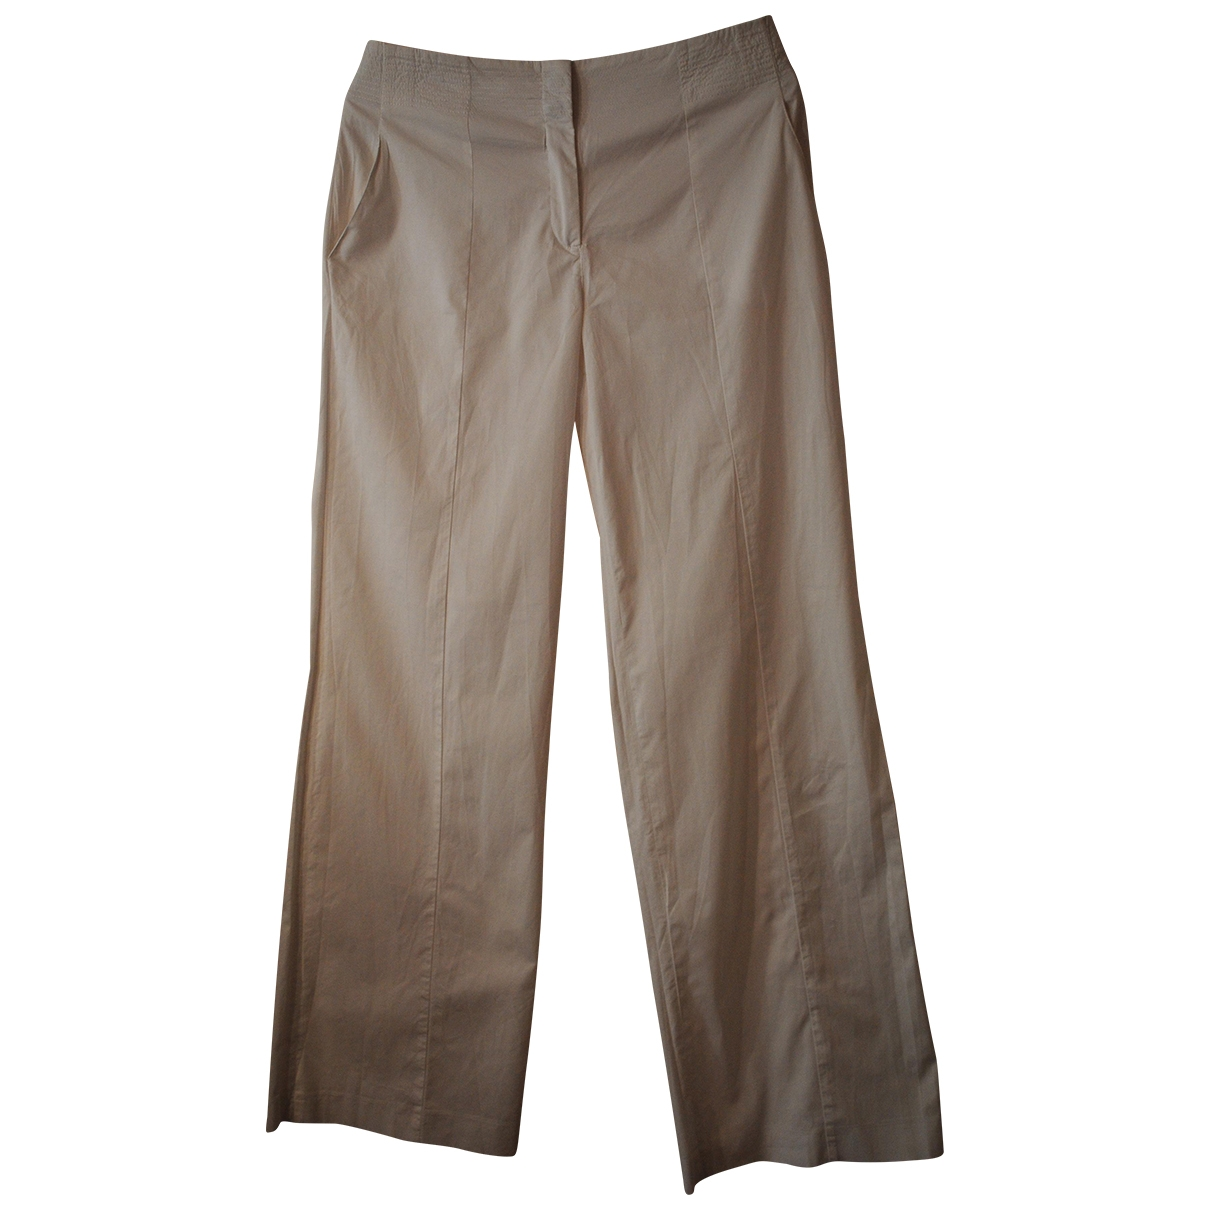 Jil Sander \N Beige Cotton Trousers for Women 38 IT